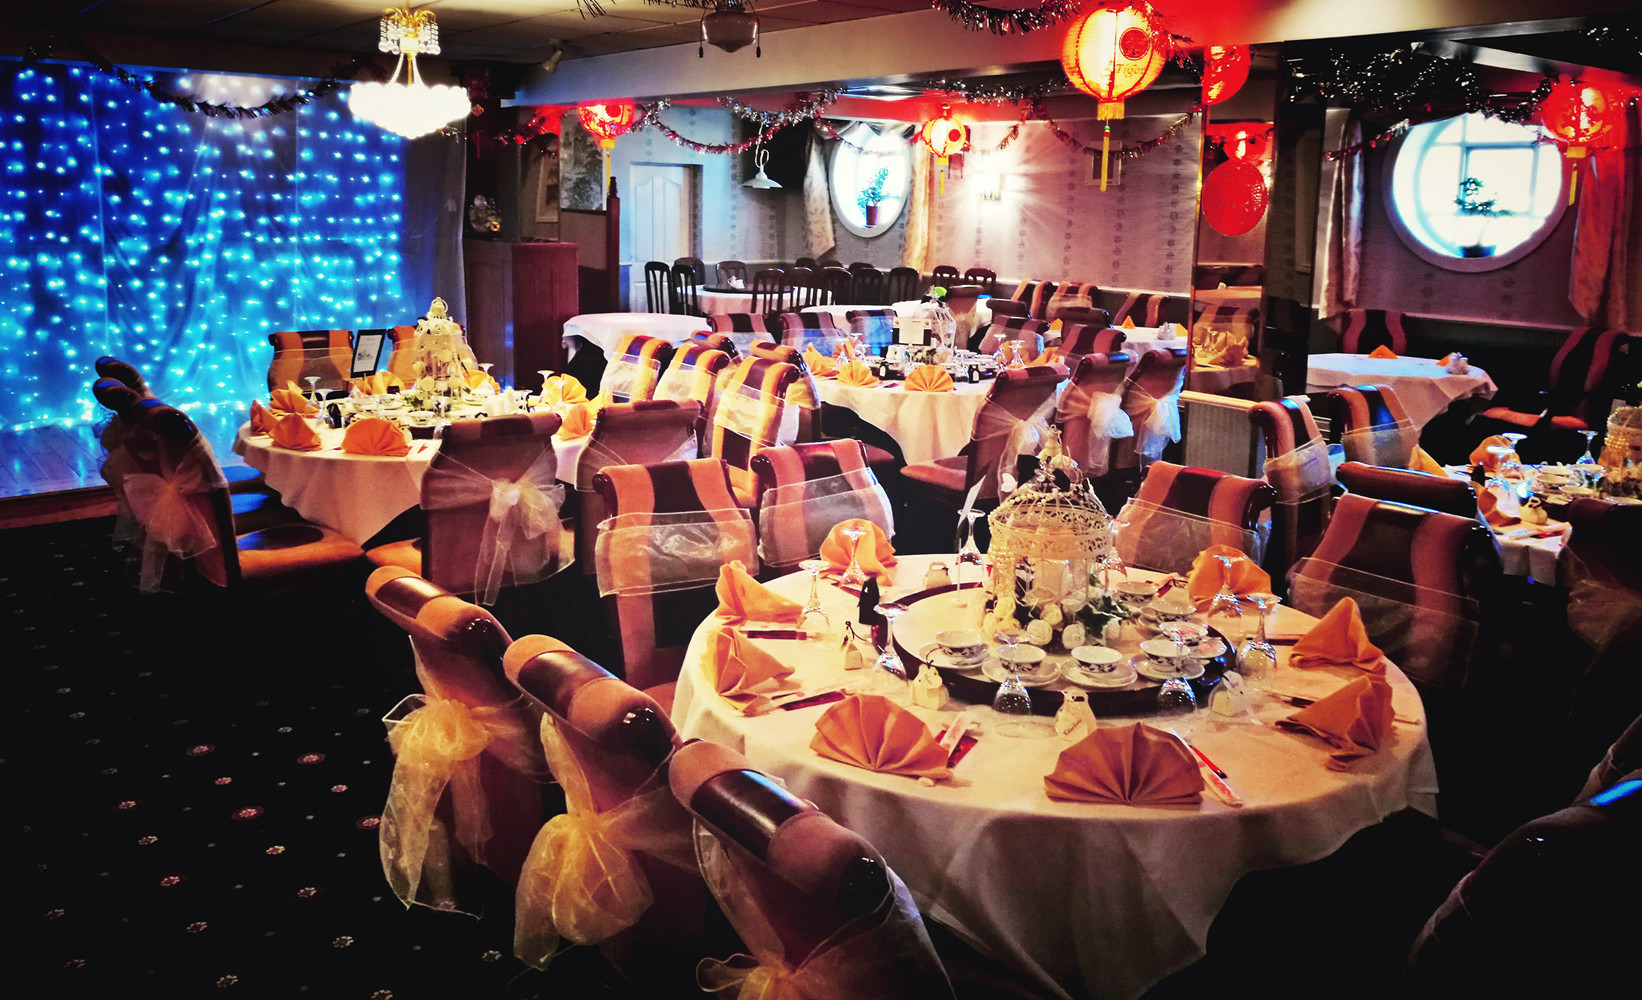 Seat up to 170 Guest, we take bookings for Company Party, Christmas Party, Wedding Receptions, Family Party, Birthday Party, Private Dinning, Charity Party,